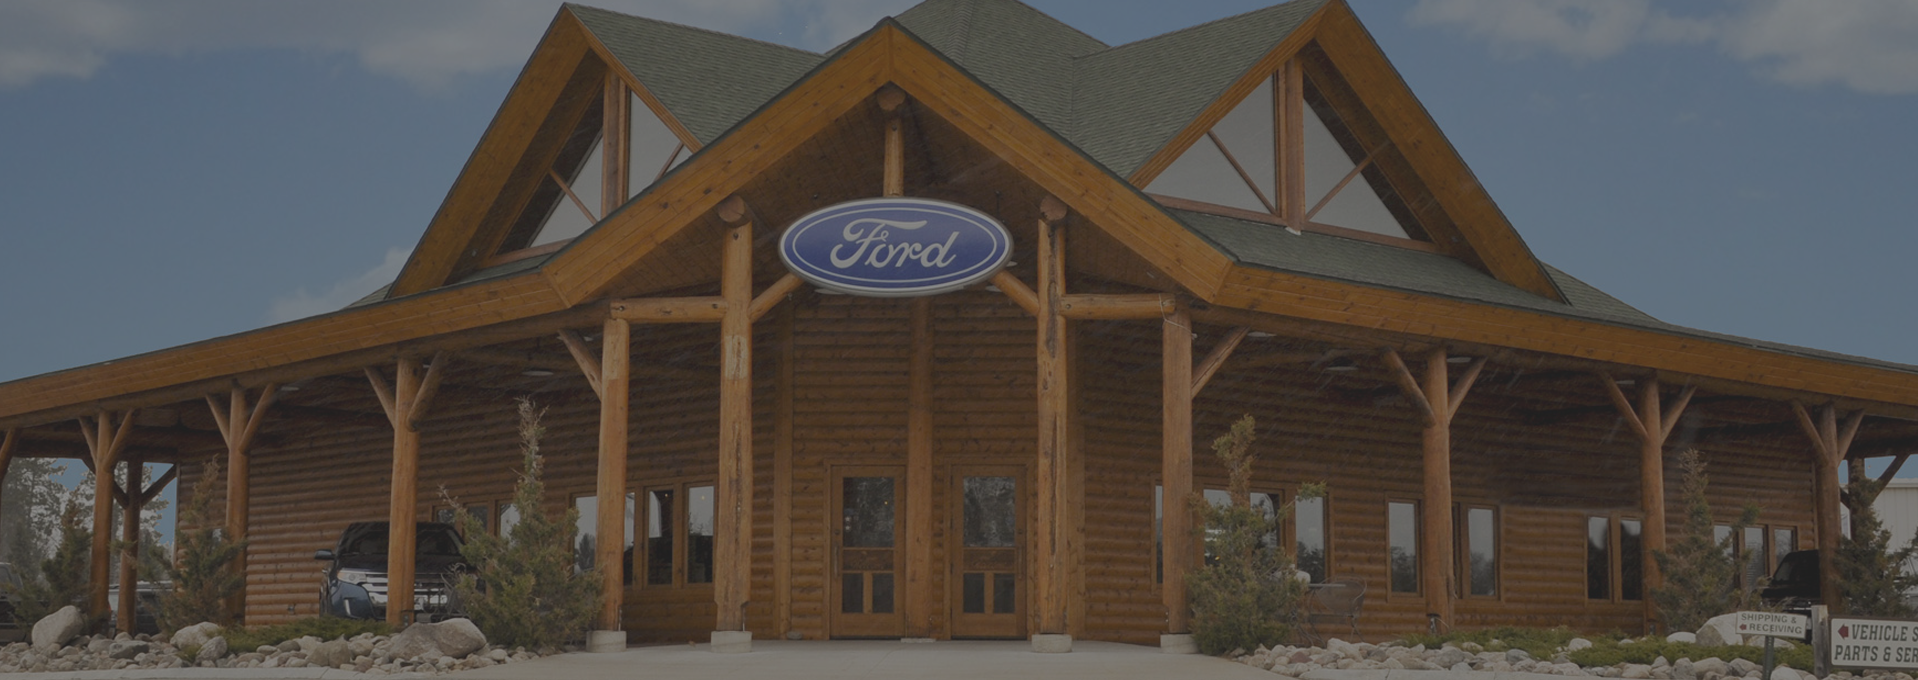 Ford Dealership Pine River MN Used Cars Kimber Creek Ford